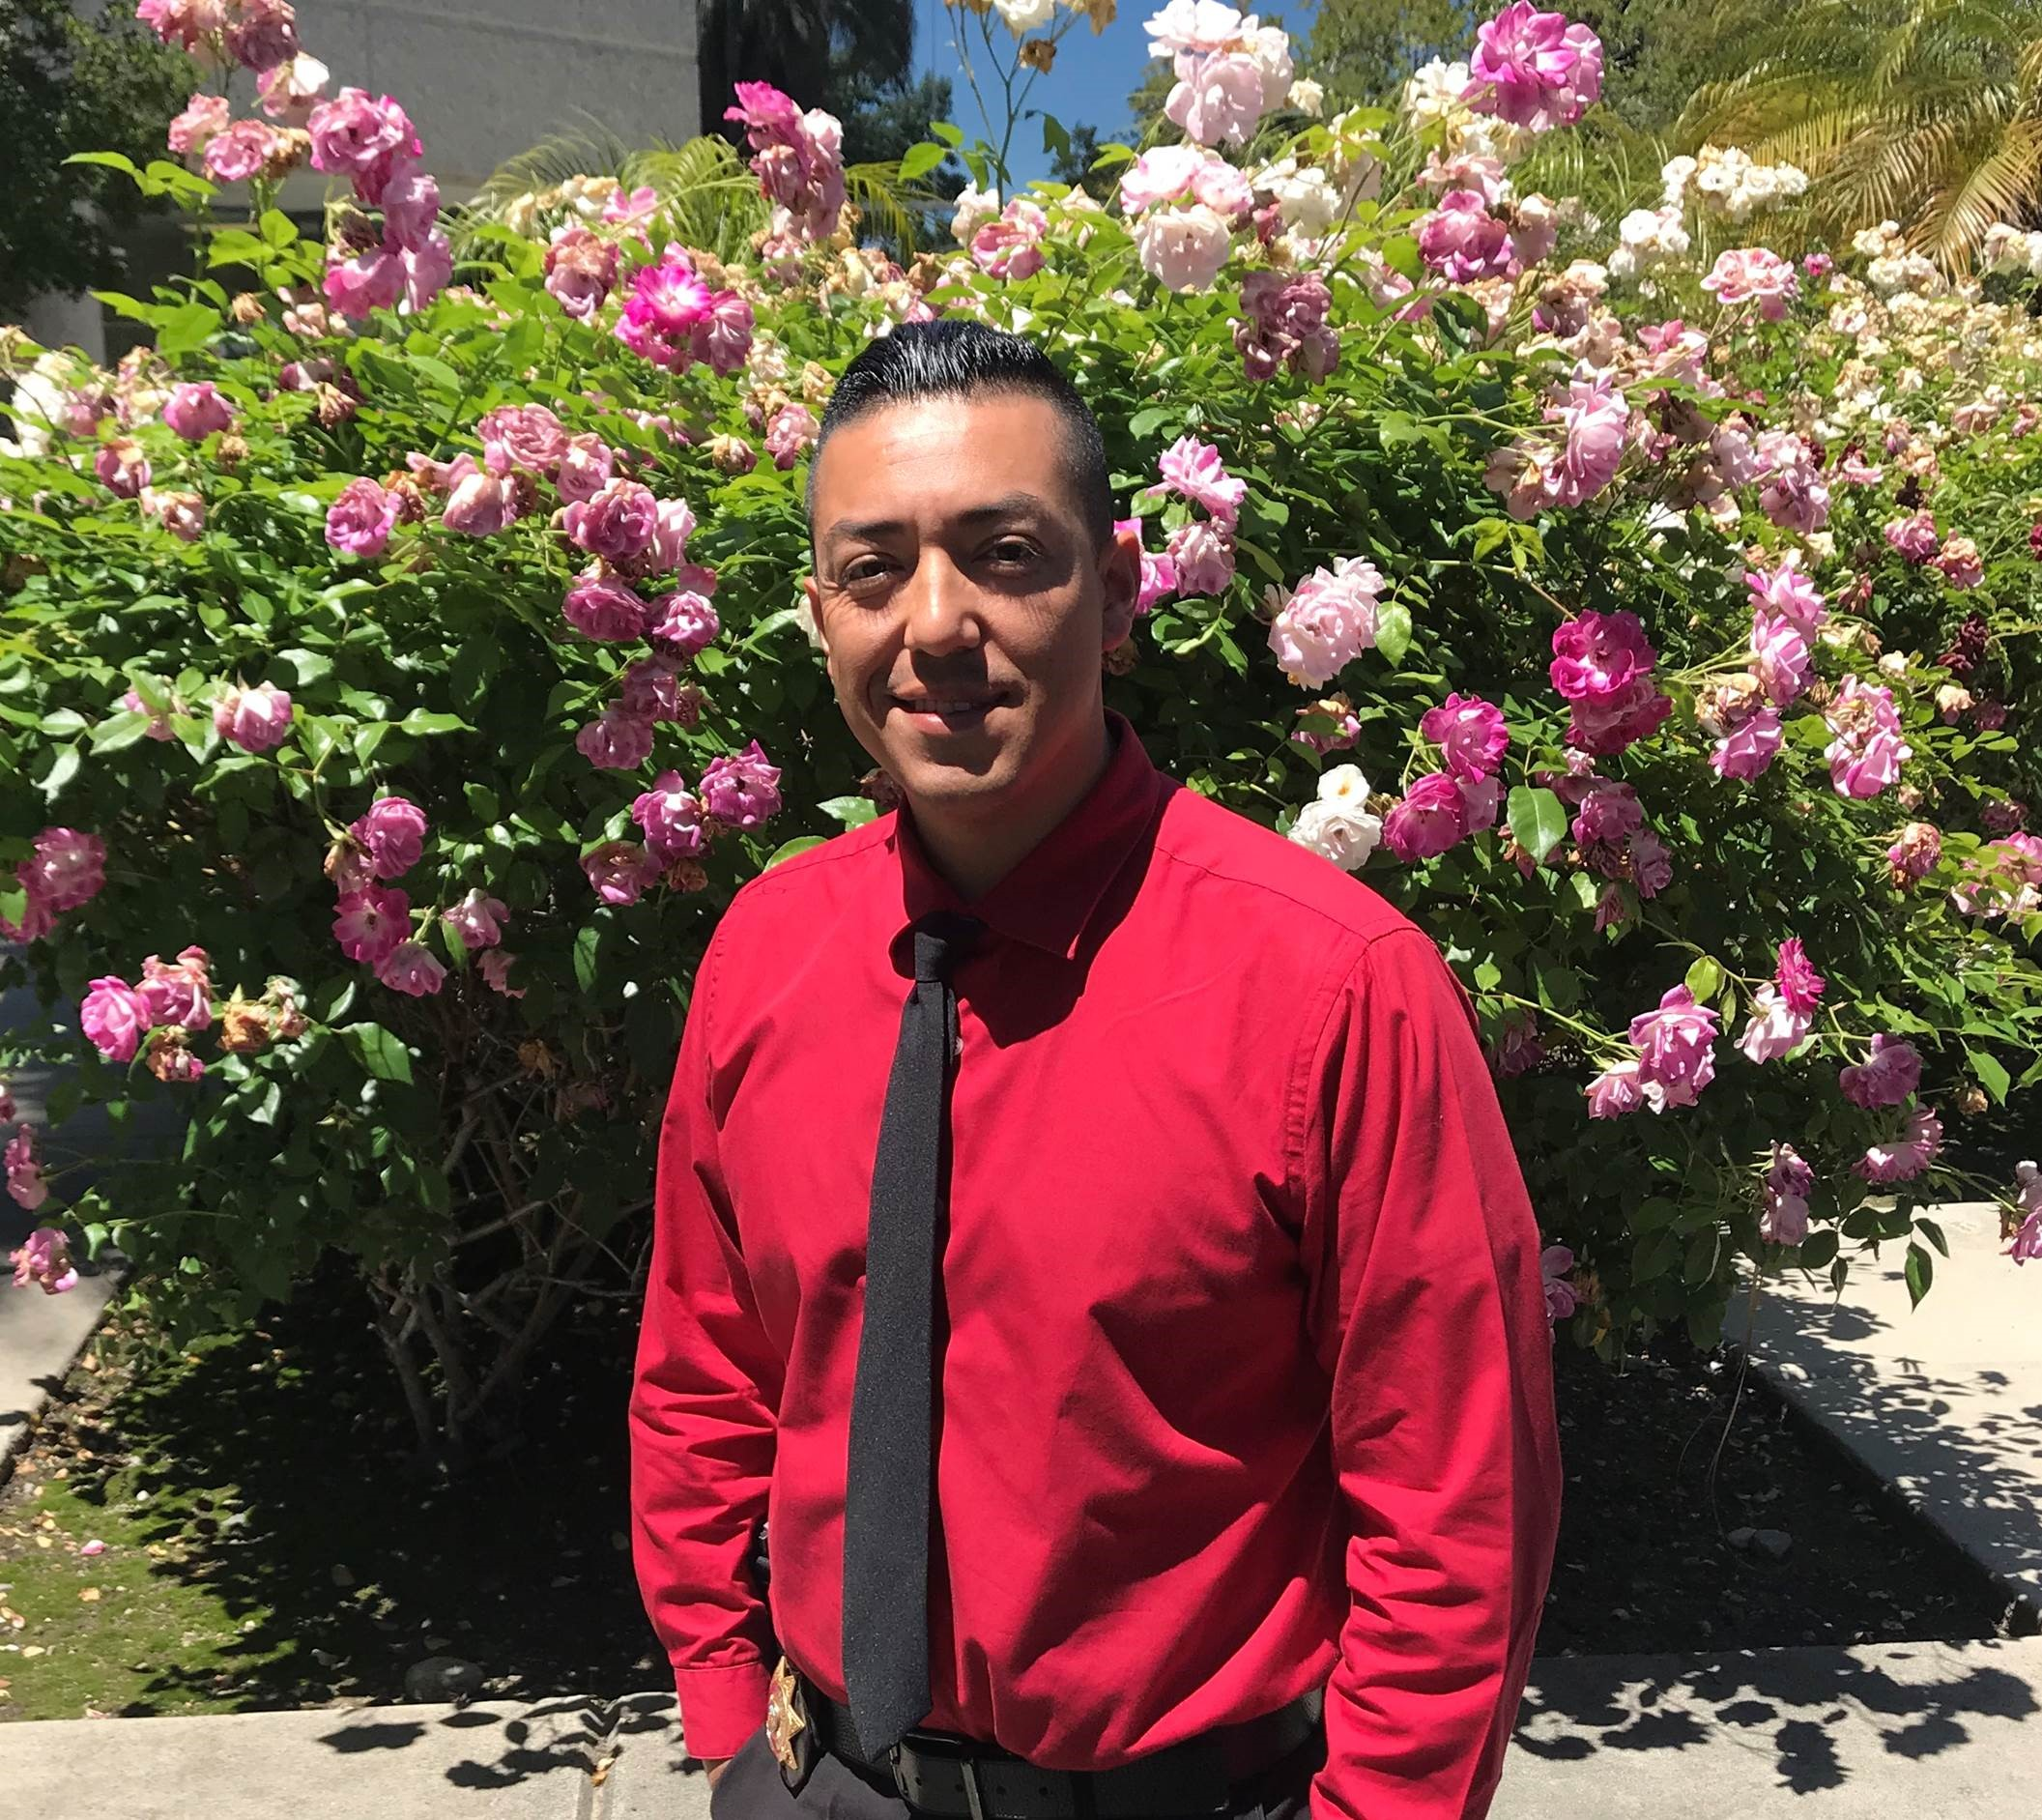 Man in red shirt and dark tie stands in front of rose bushes.